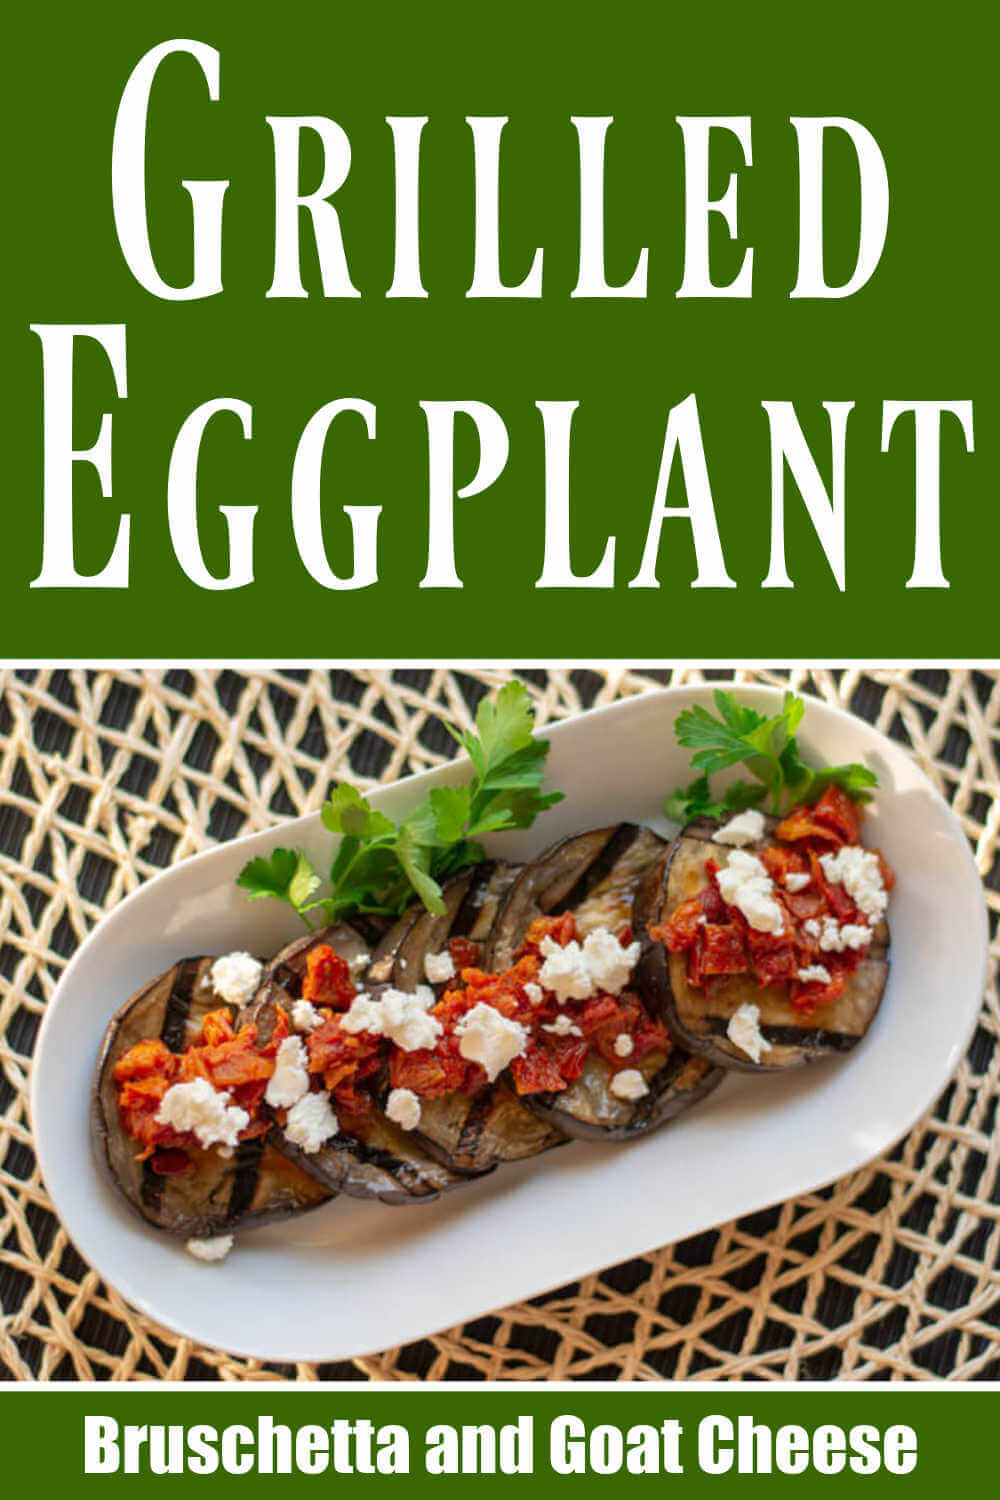 Grilled Eggplant, Bruschetta and Goat Cheese